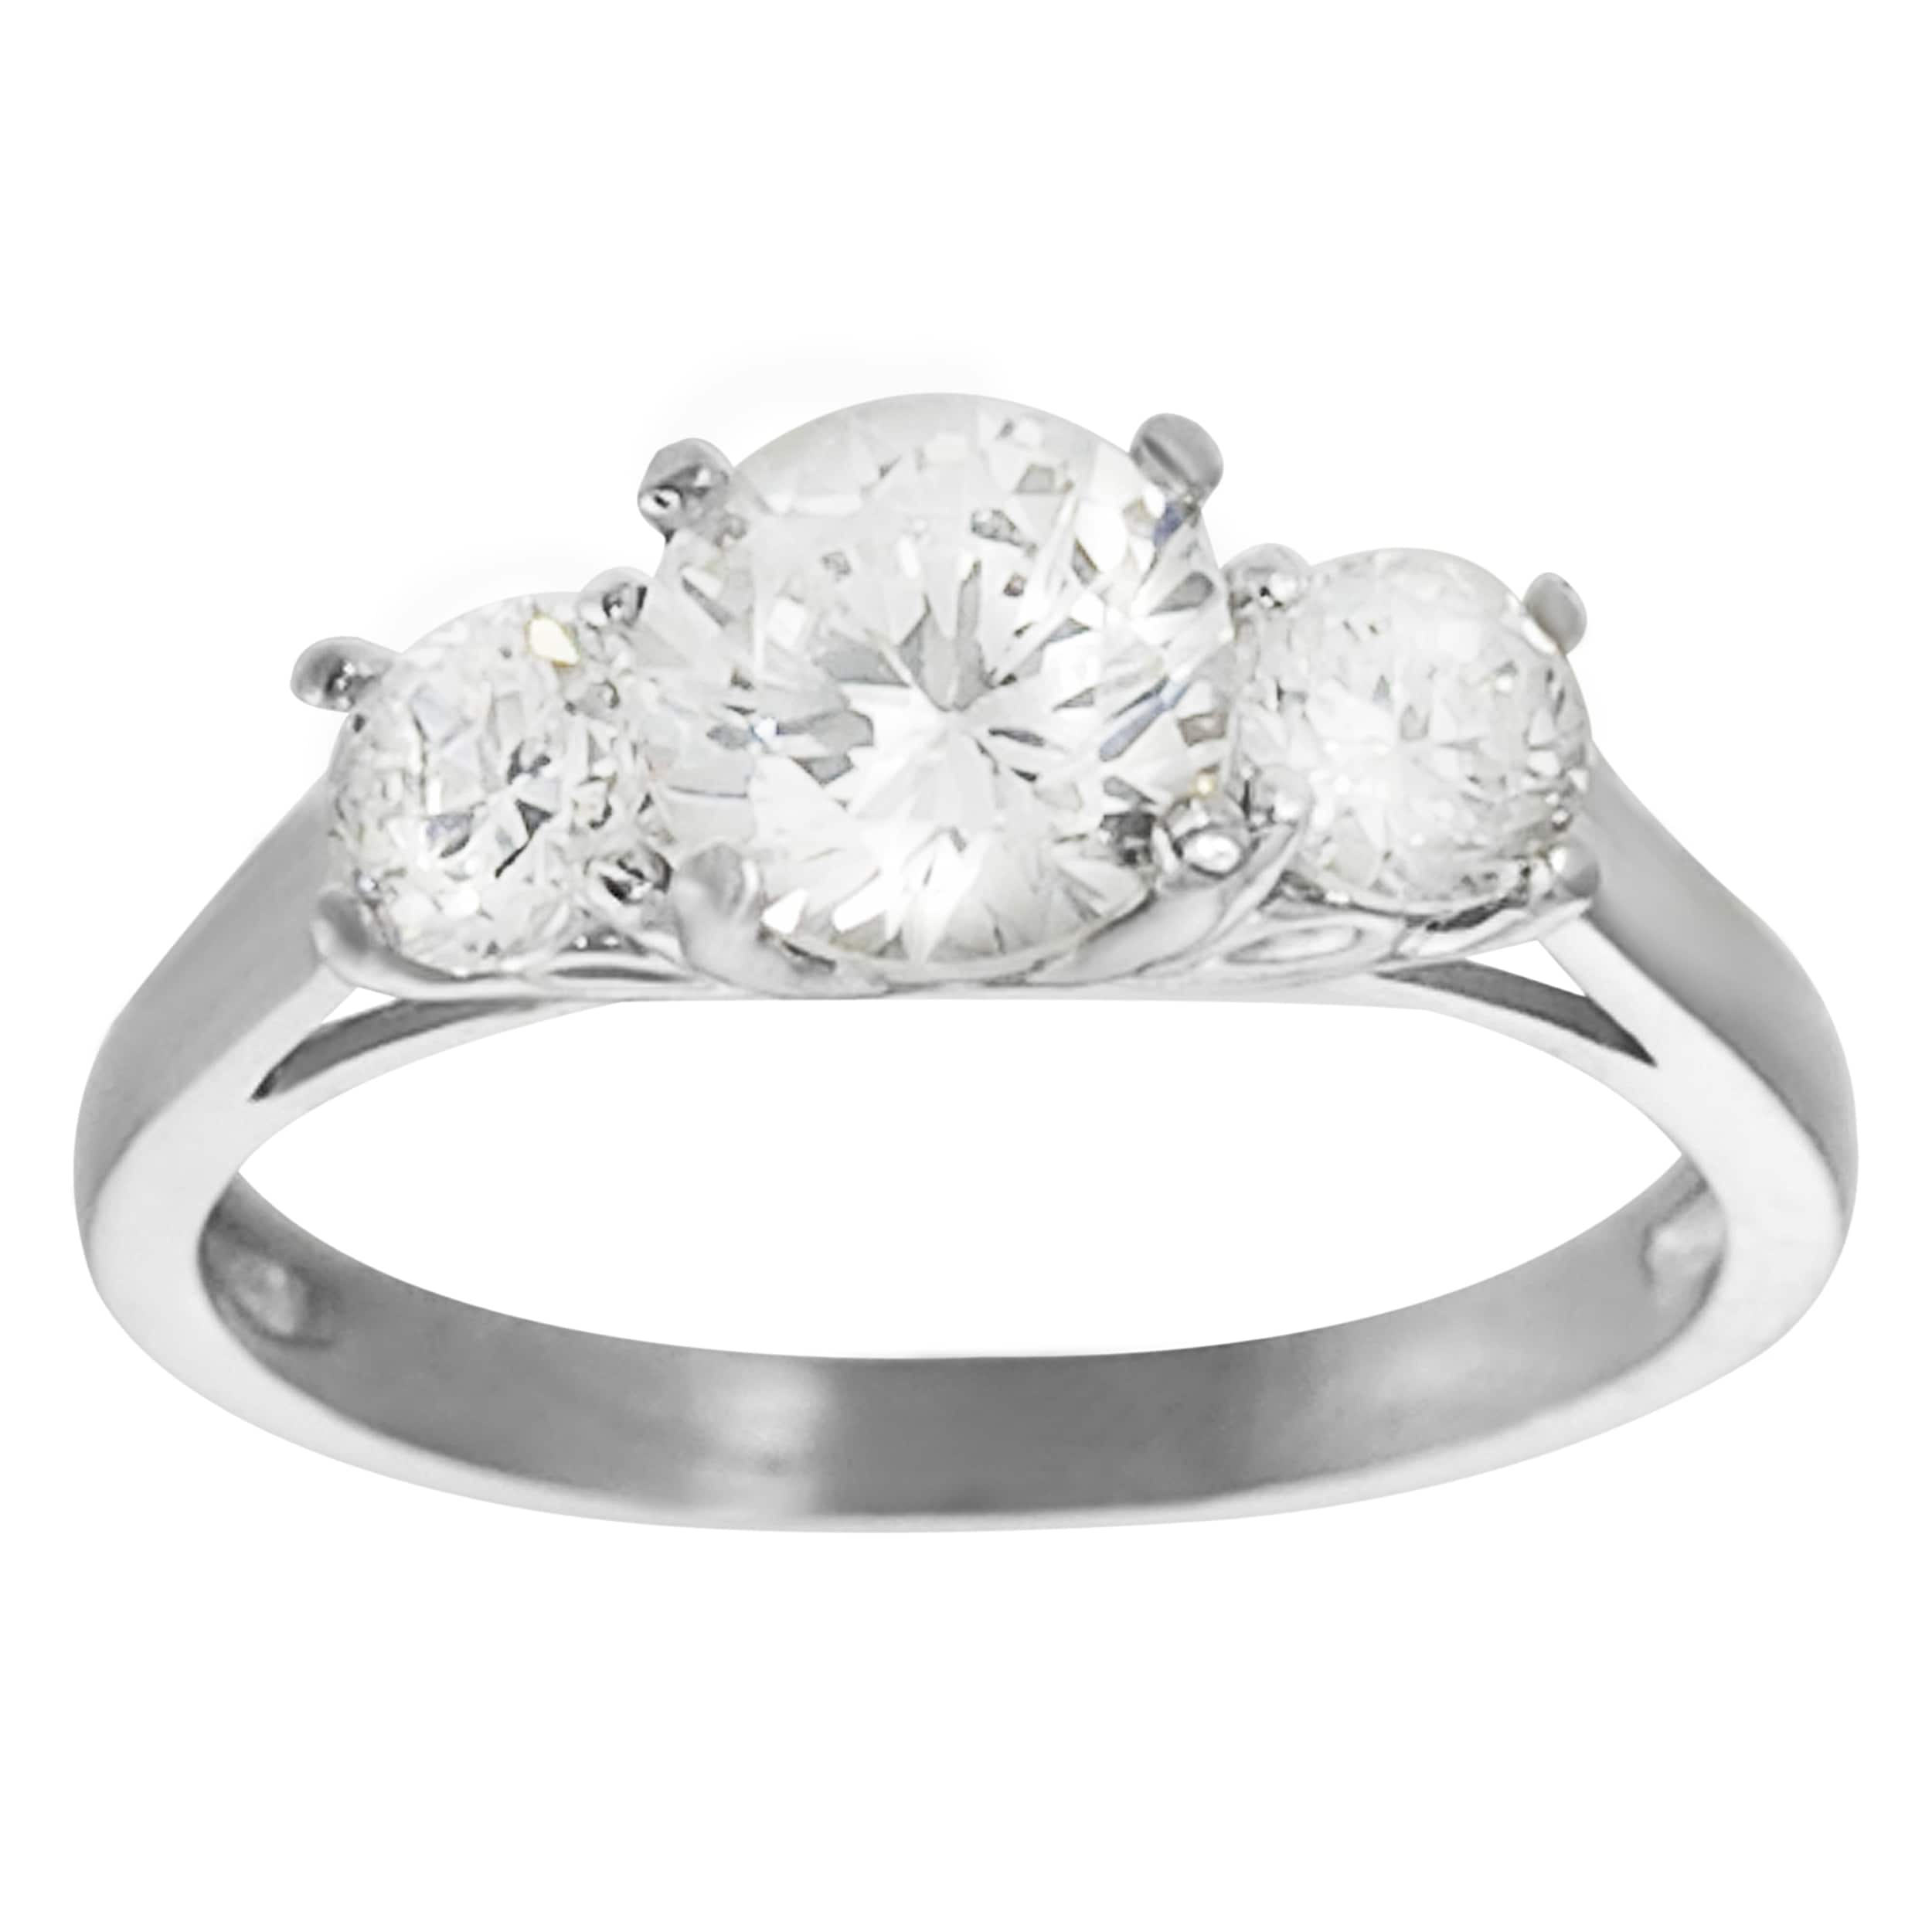 Journee Collection Rhodium-plated Cubic Zirconia Engagement-style Ring